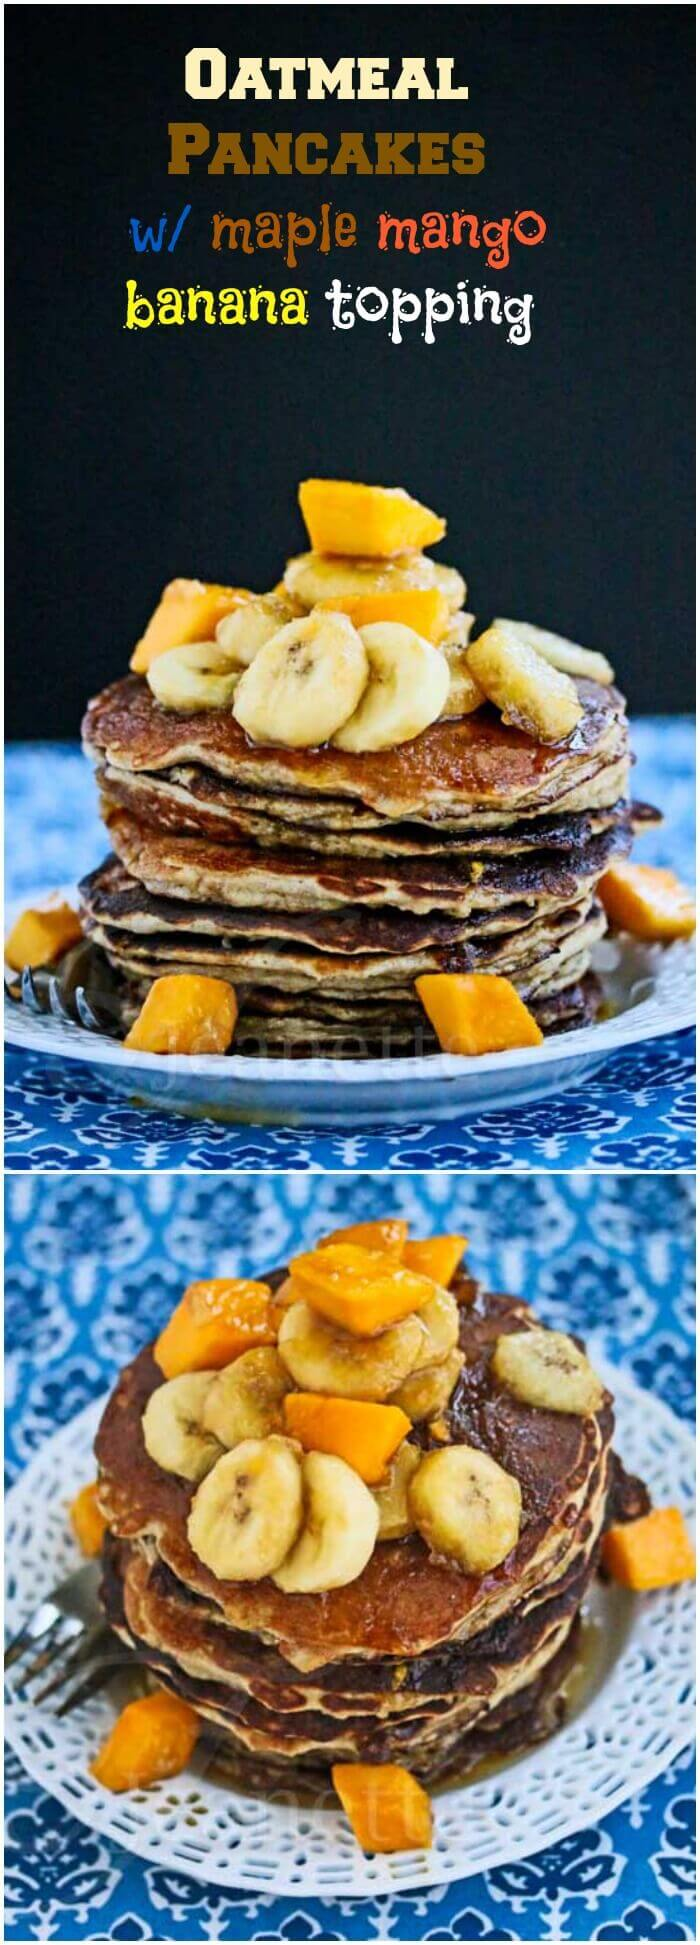 Oatmeal Almond Pancakes with Maple Mango Banana Topping